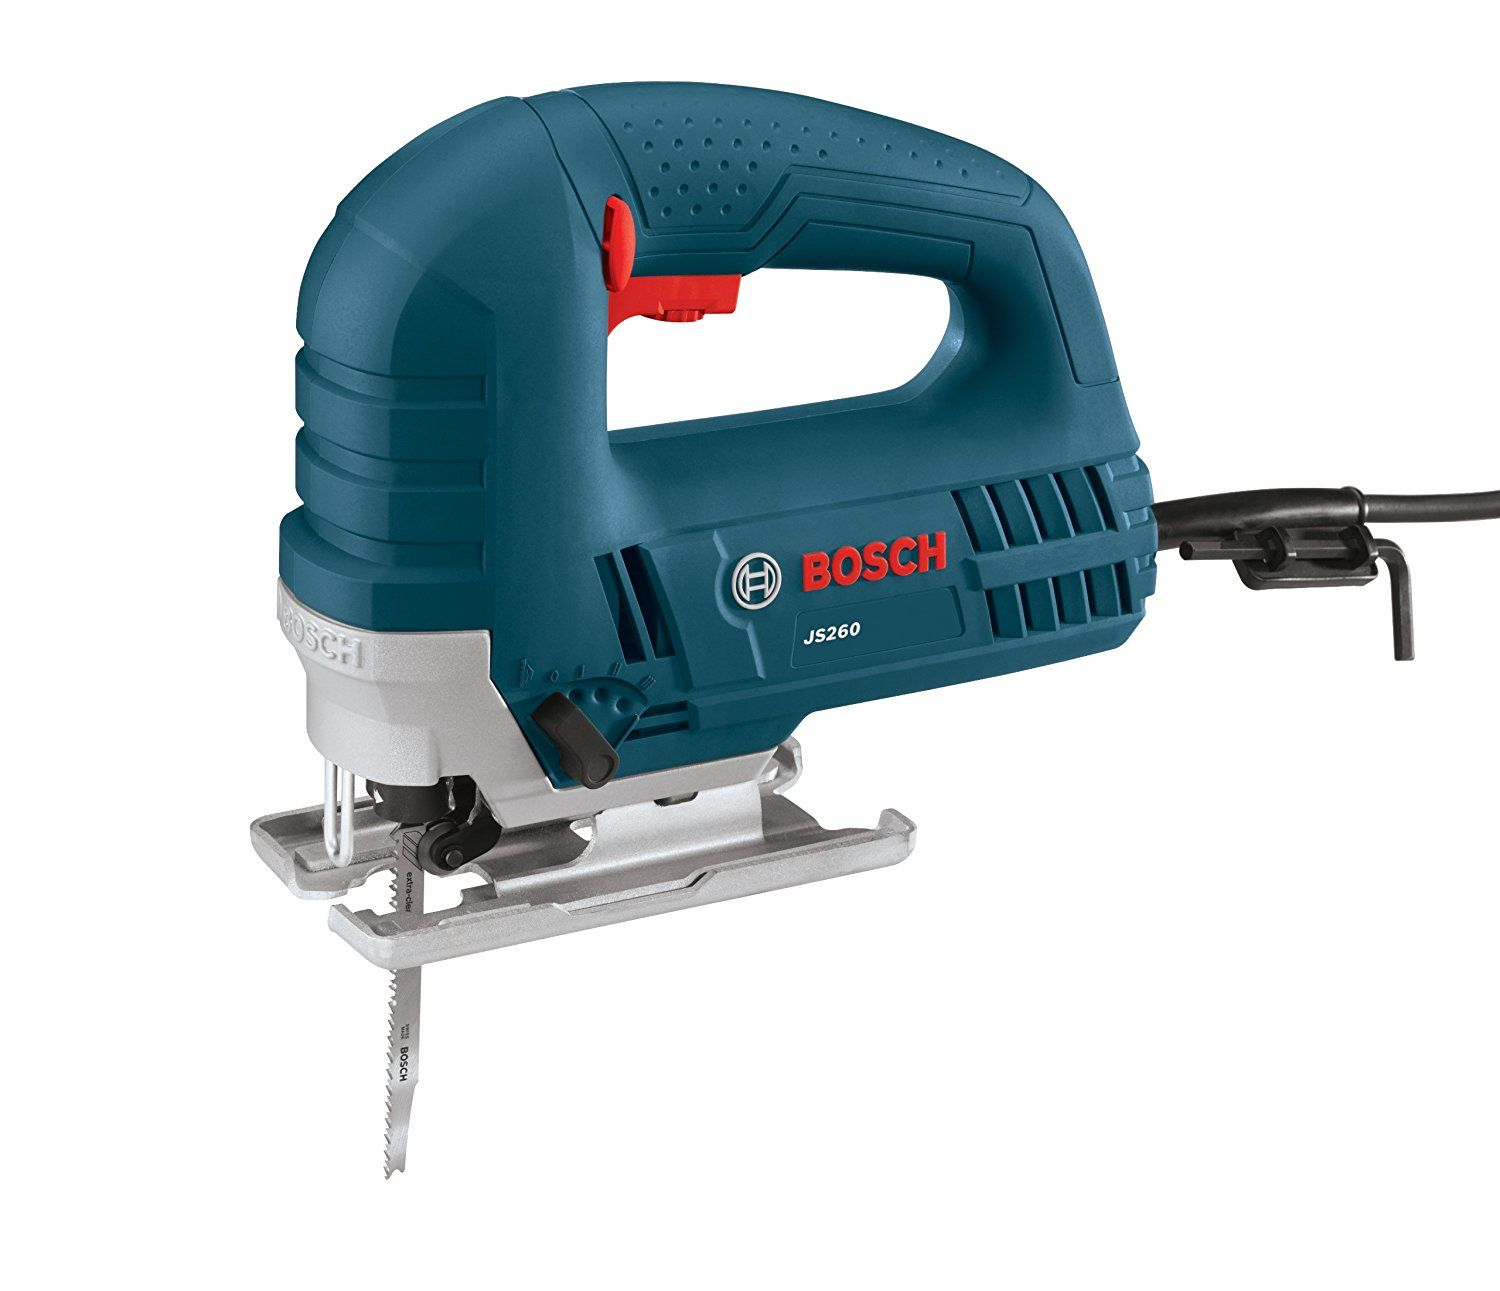 Top 5 Best Jigsaw Power Tool For Woodworking Review